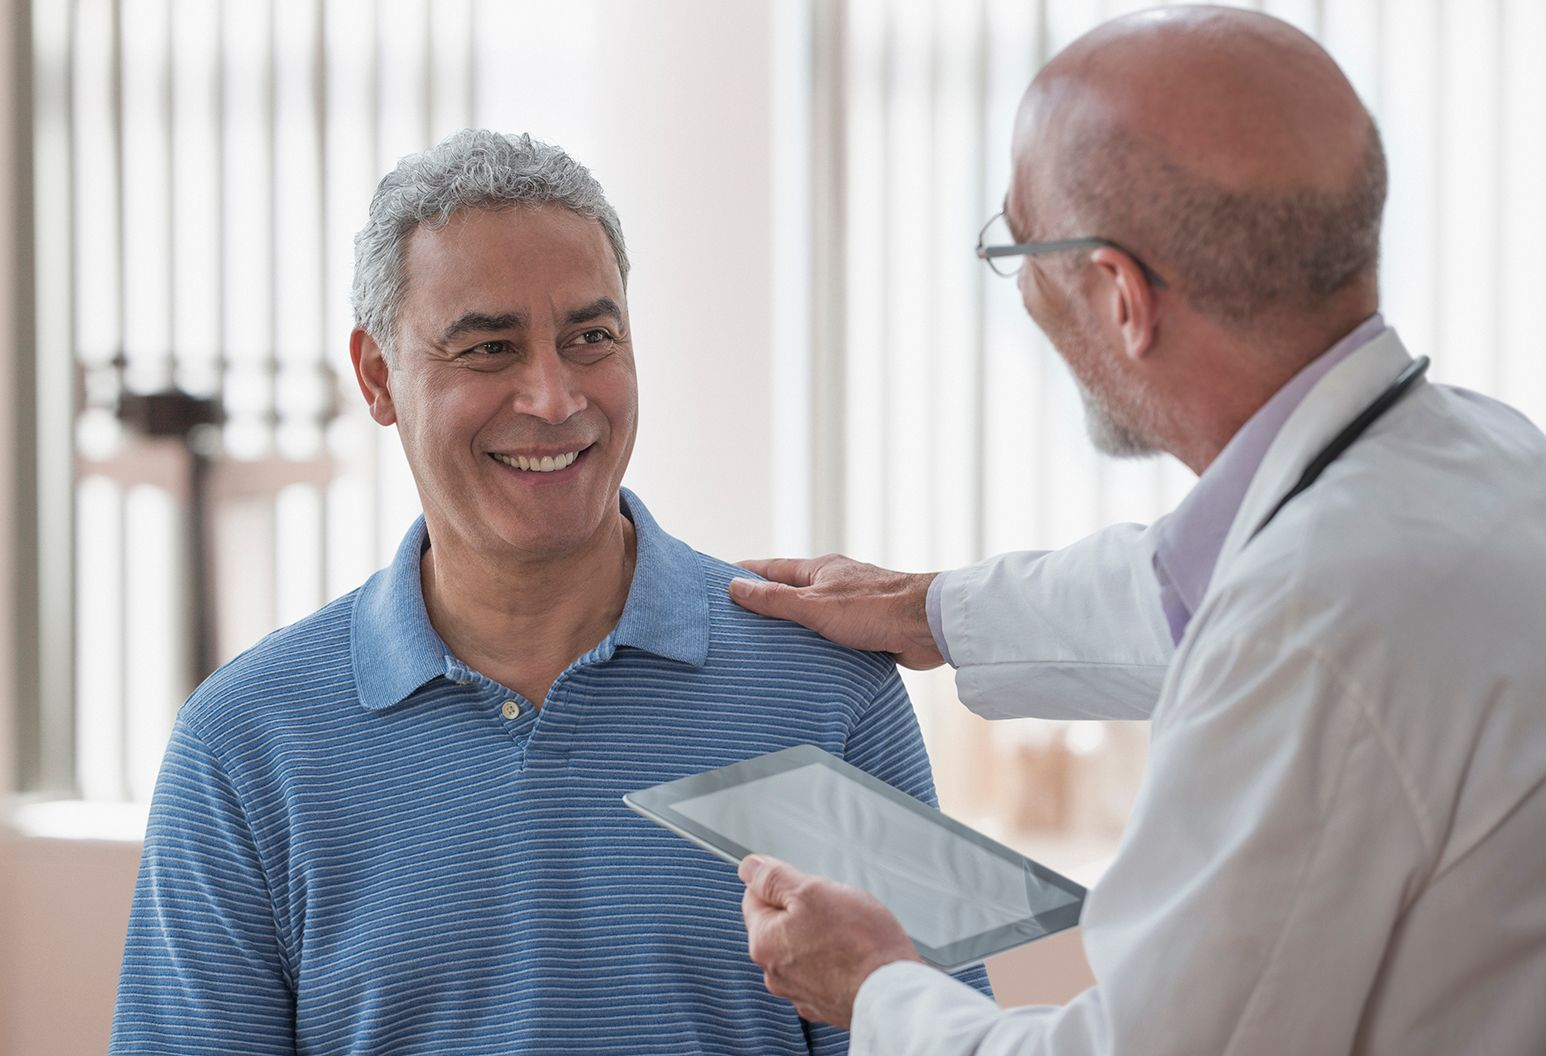 Doctor placing his hand on patient reassuringly as patient smiles at him